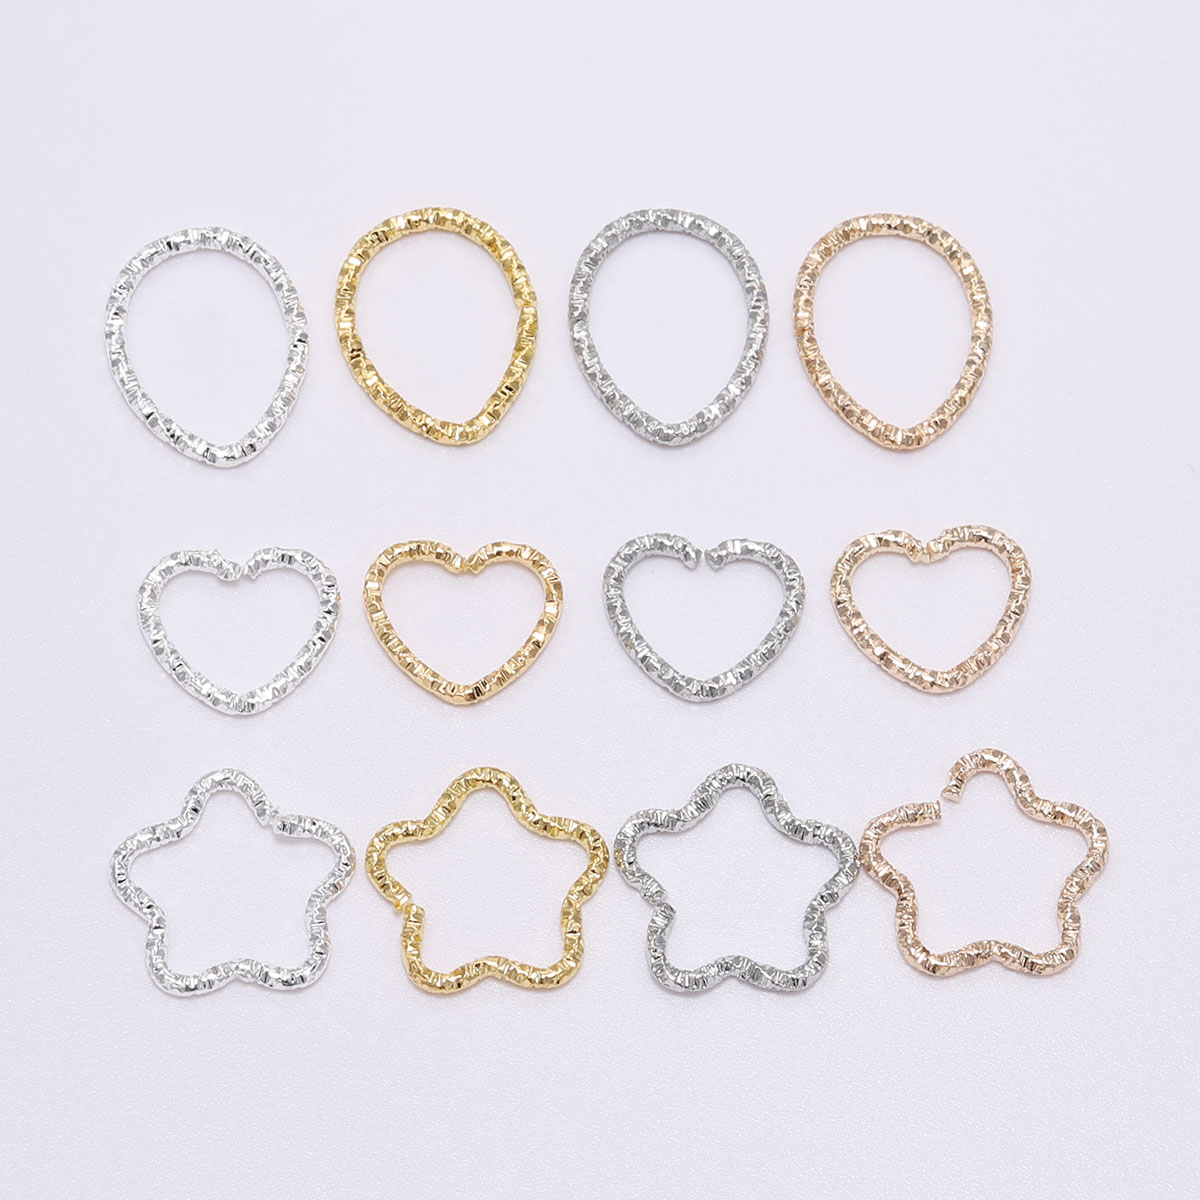 50pcs 16.5mm Gold Silver Star Jump Rings Twisted Split Rings Connectors Diy Craft Charms Spacer Beads For Jewelry Finding Making